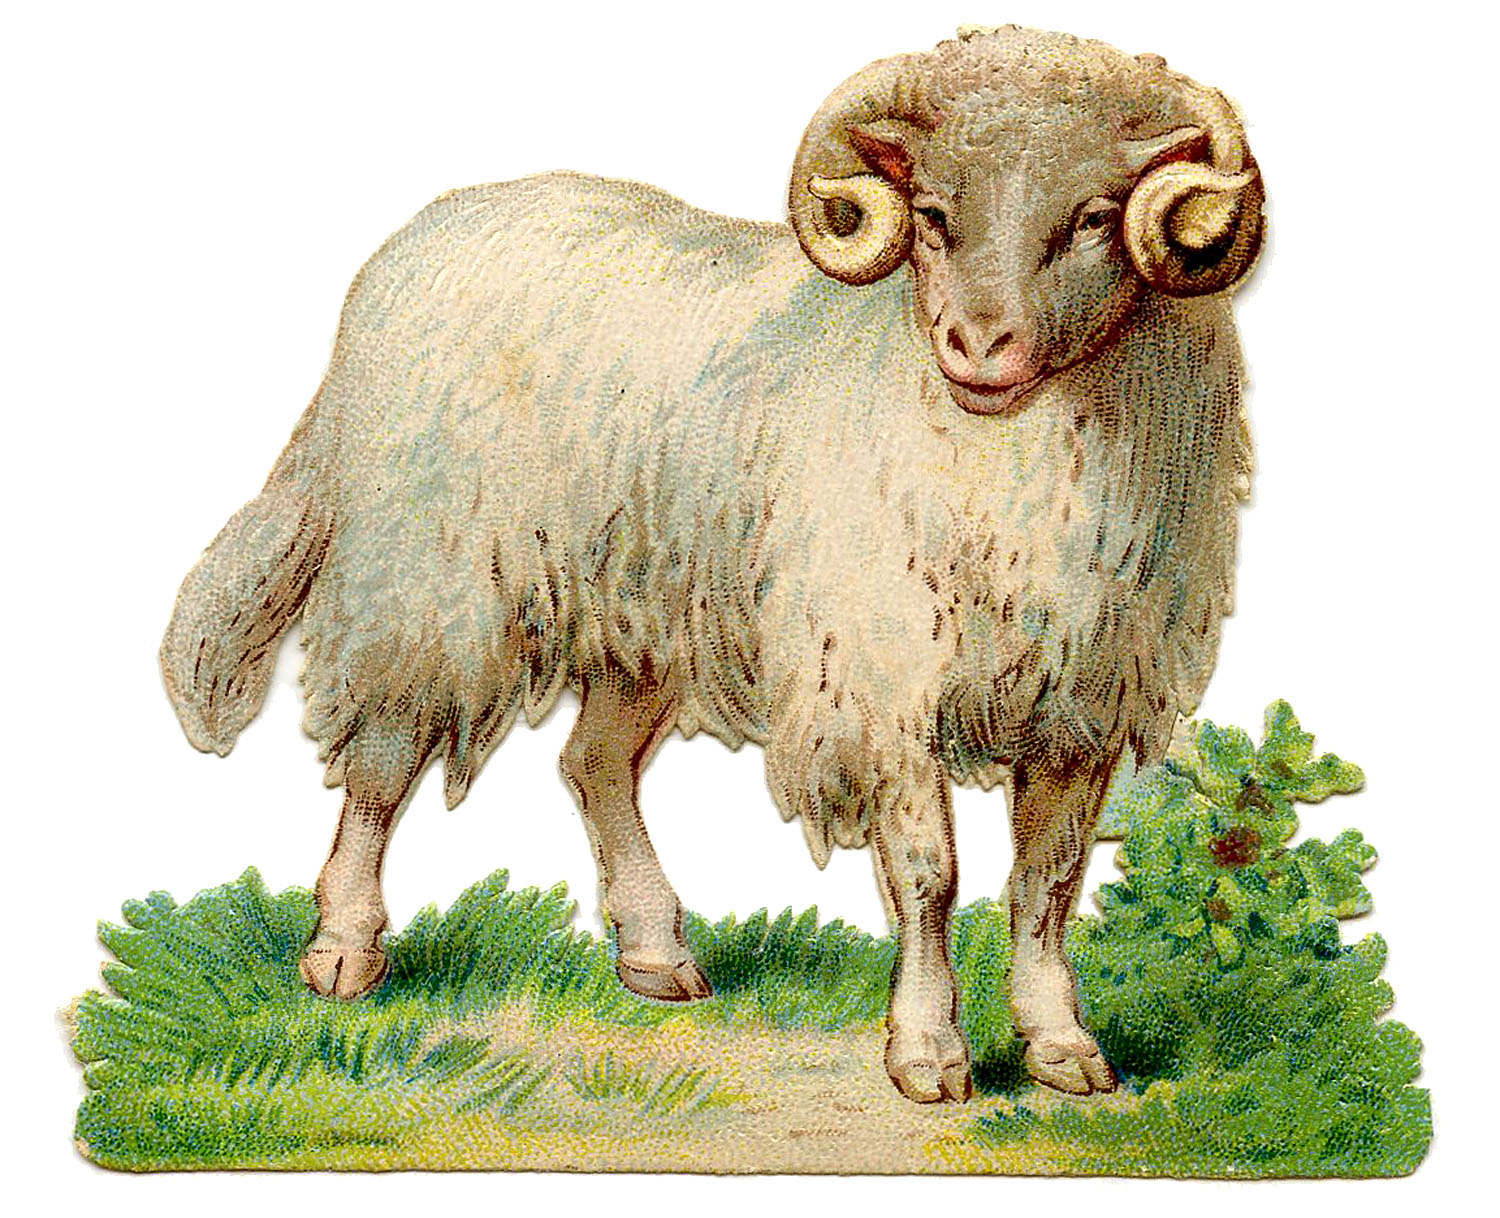 http://thegraphicsfairy.com/wp-content/uploads/2013/03/Sheep-Image-Vintage-GraphicsFairy1.jpg